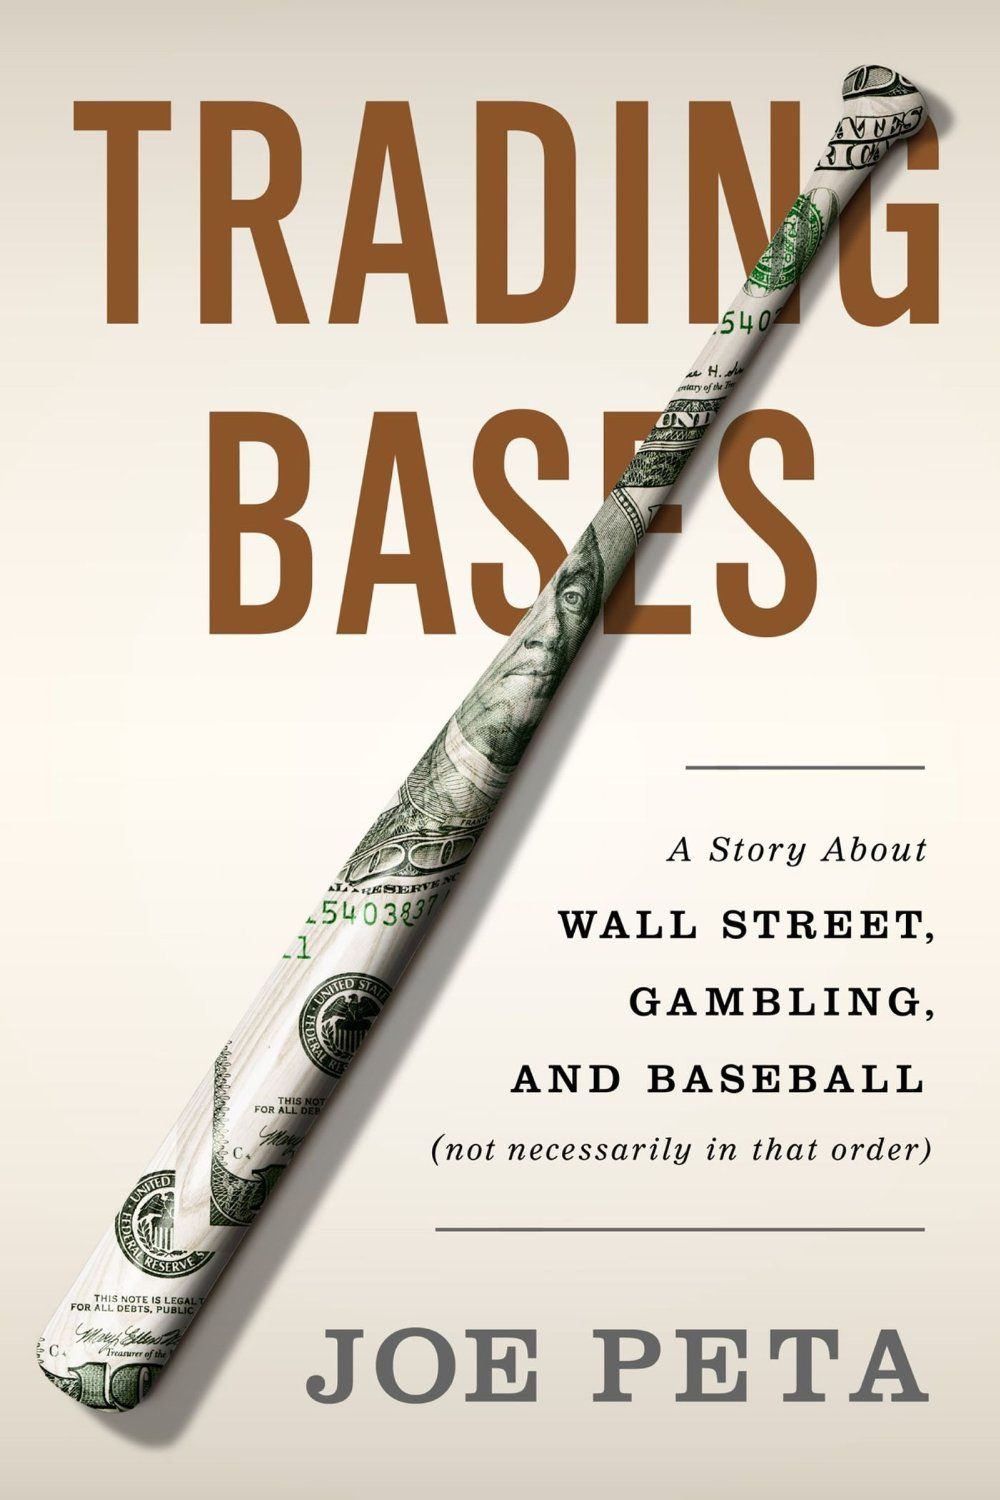 """""""A fun approach to developing the discipline necessary to separate reproducible skills from the disruptive effects of chance in baseball, finance, and life. Peta's approach is helpful to understanding statistical analysis in any field, not just the chosen baseball specialty. The main focus on baseball provides a starting point for much more.""""   ~Kirkus Reviews"""